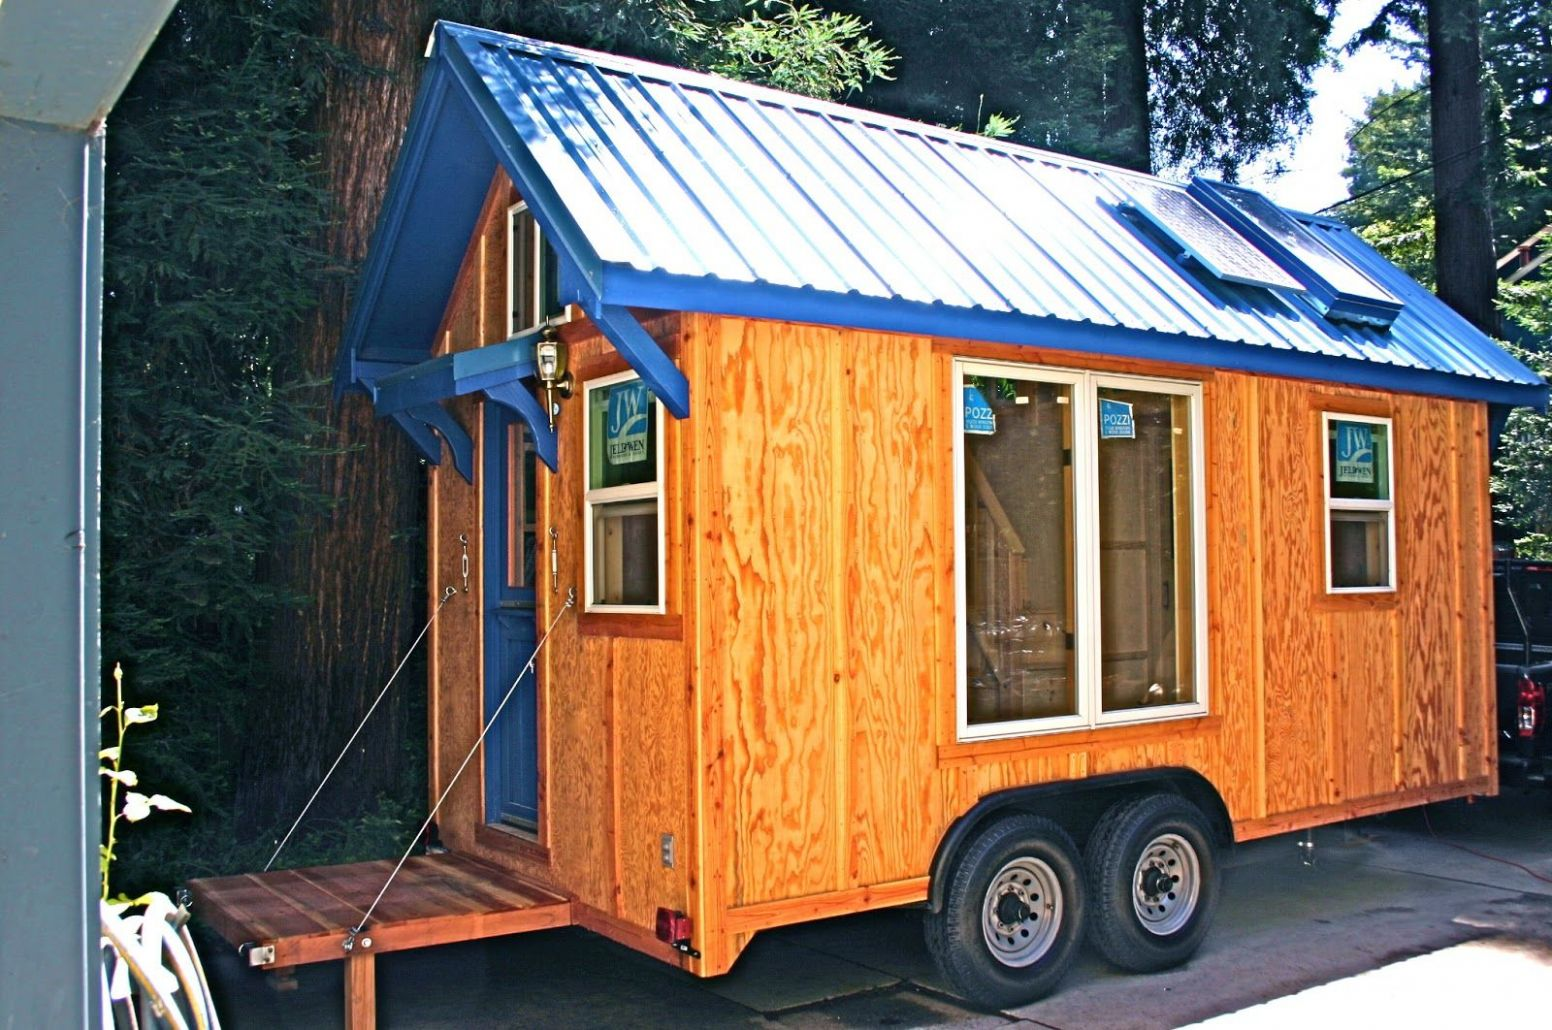 11x11 tiny house - Bing Images | Tiny mobile house, Shed to tiny ...